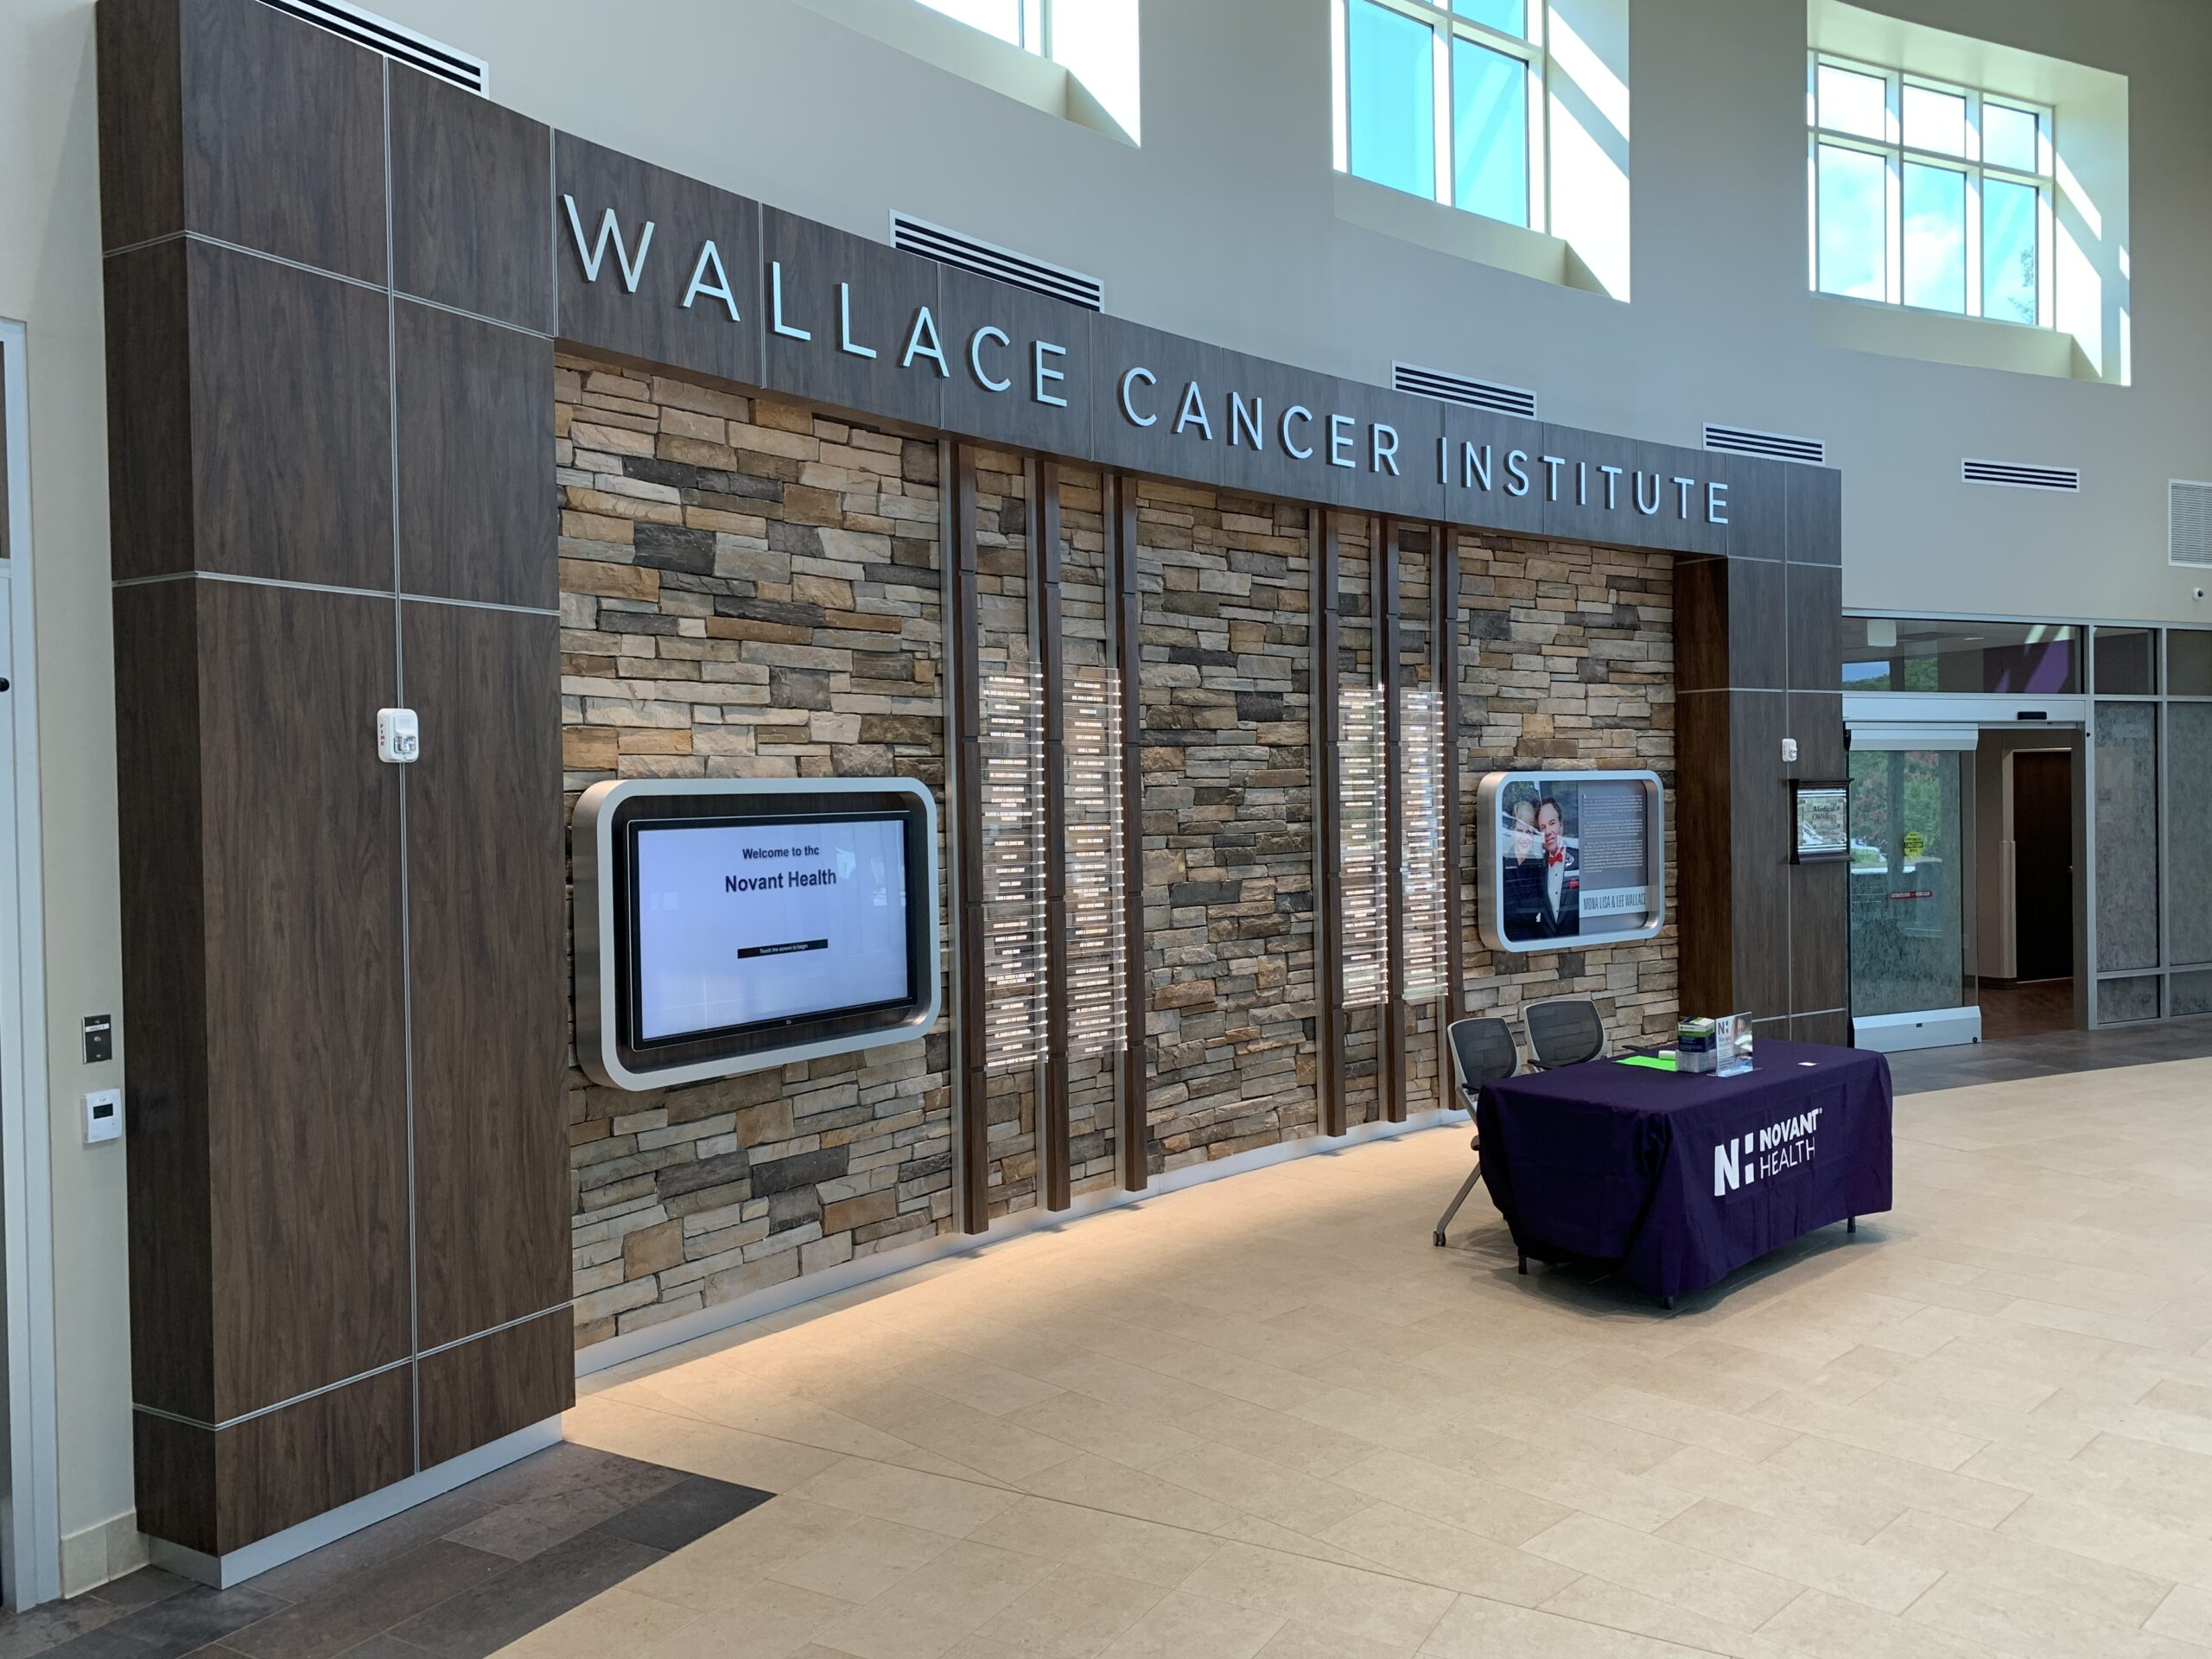 Entrance to the Wallace Cancer Institute